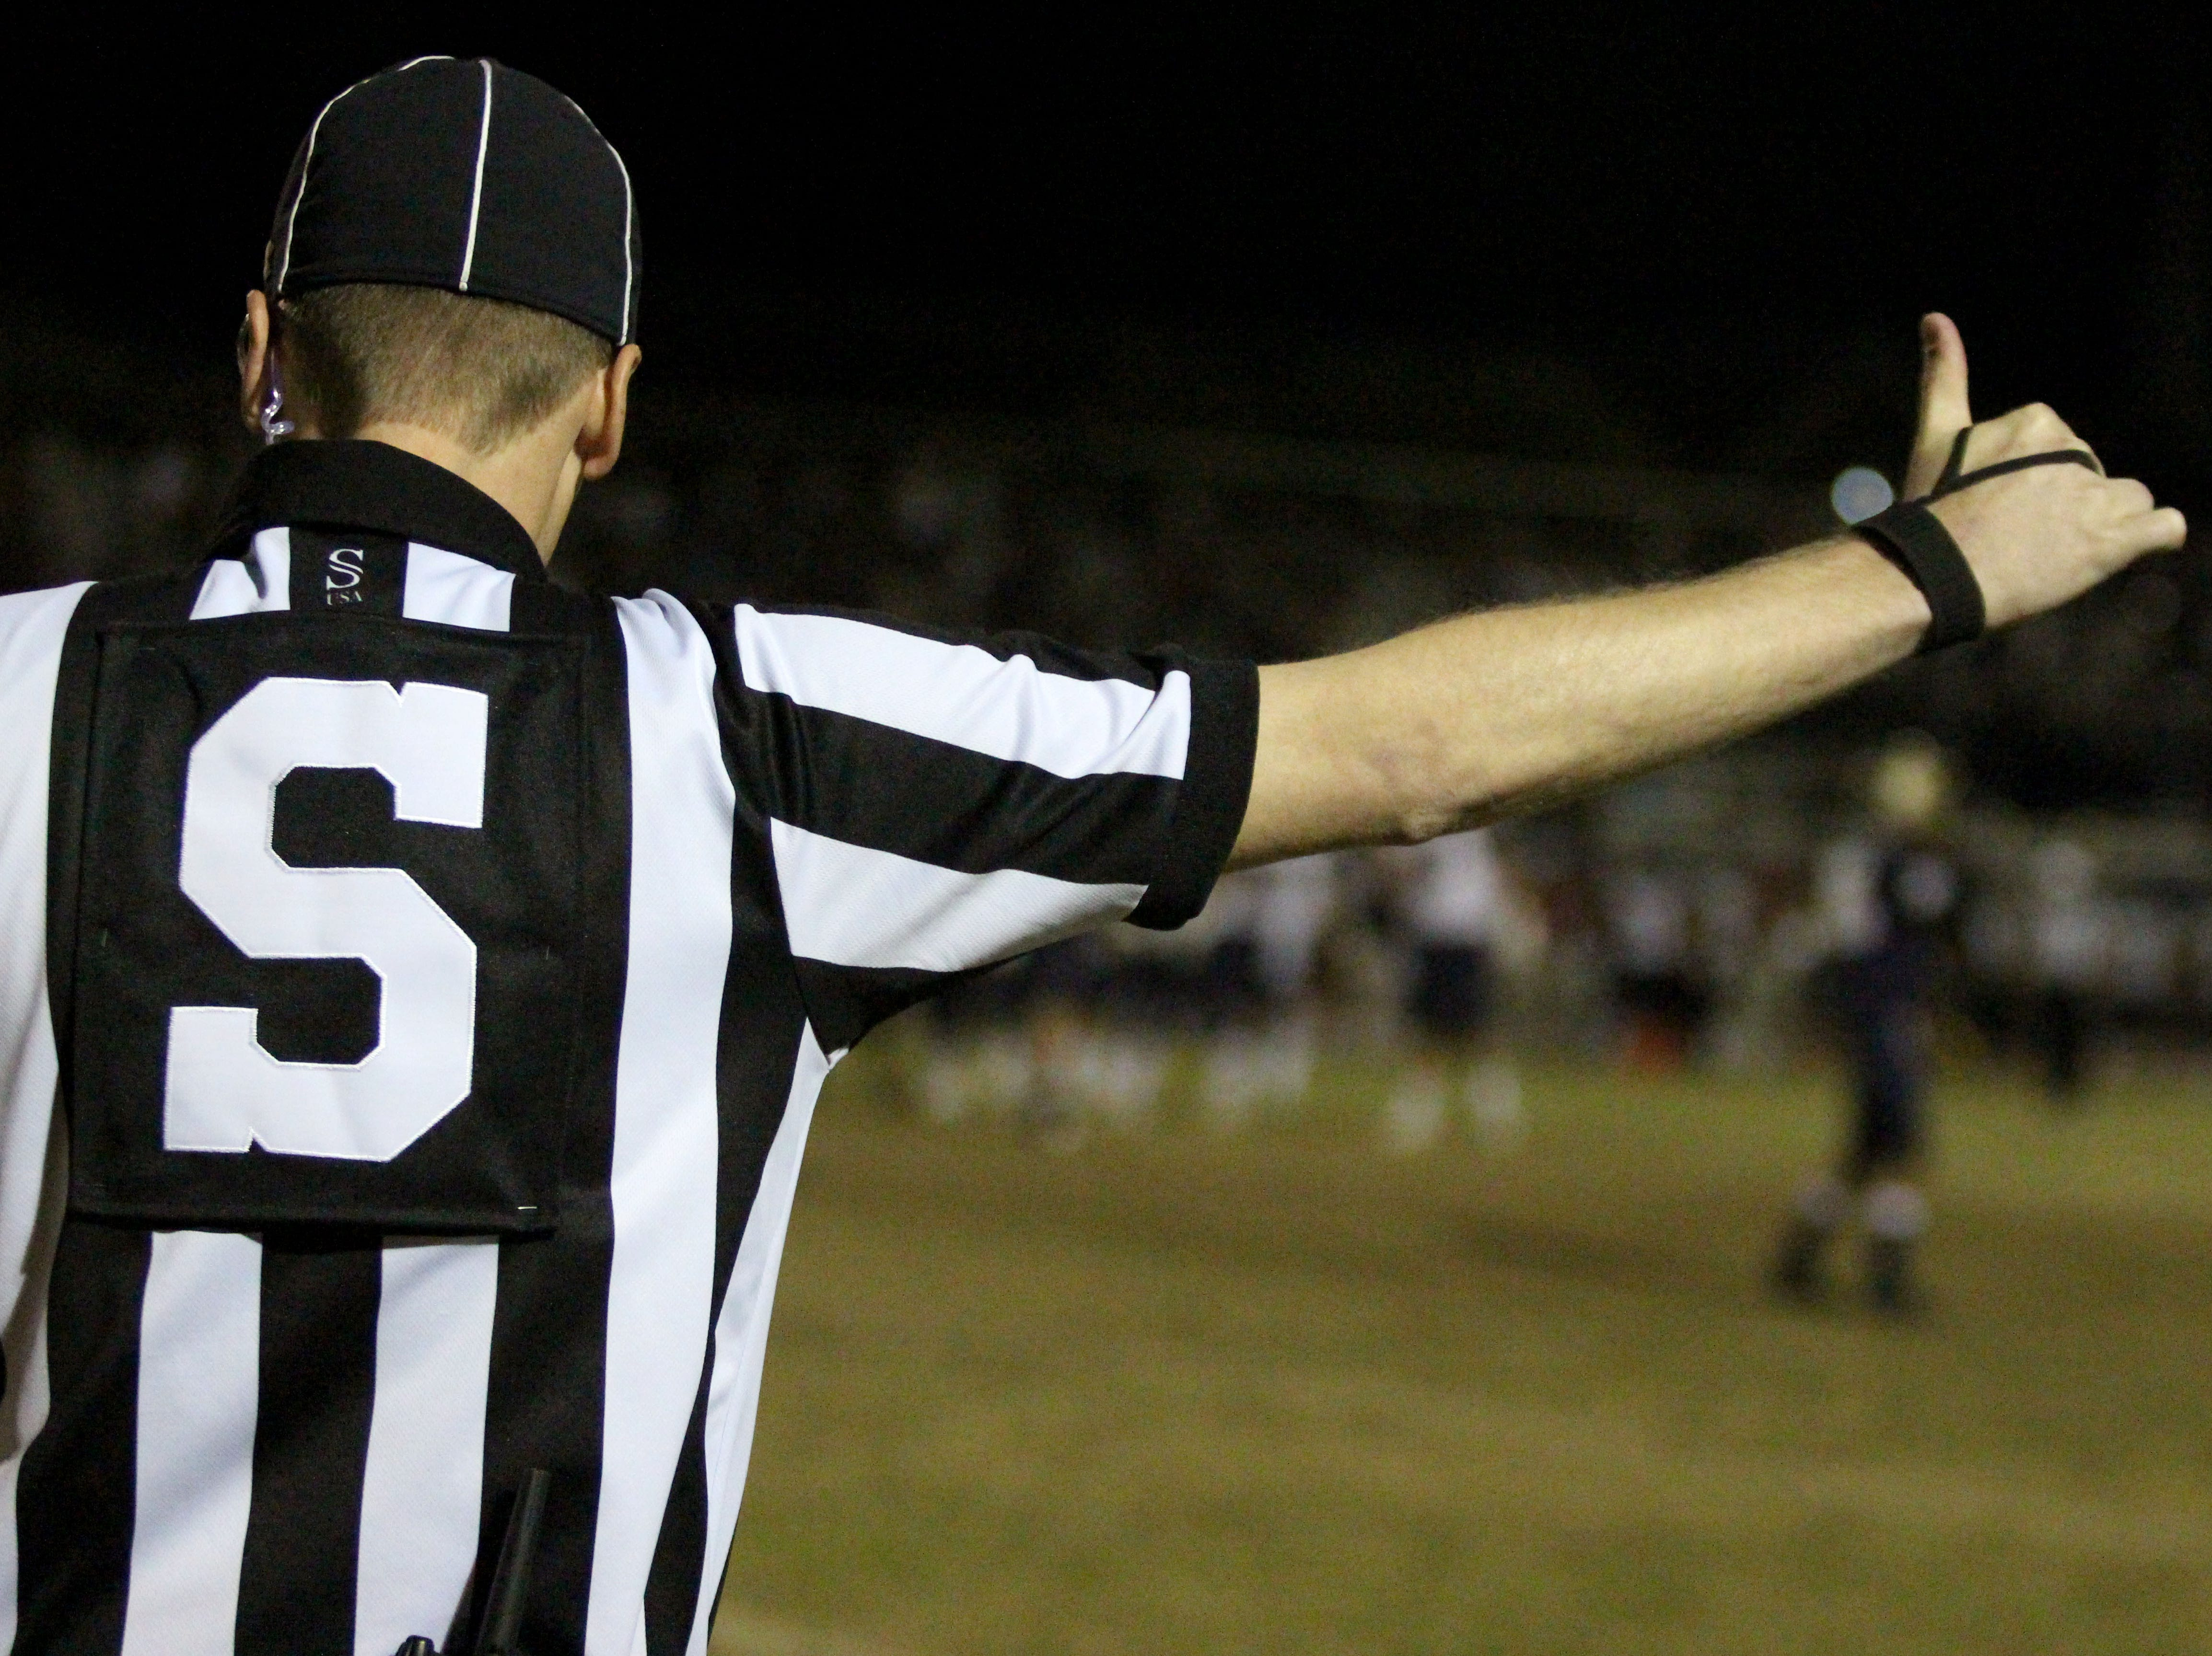 The referee watches on during the Desert Vista and Perry game on Friday night at Desert Vista High School on Nov. 9, 2018.